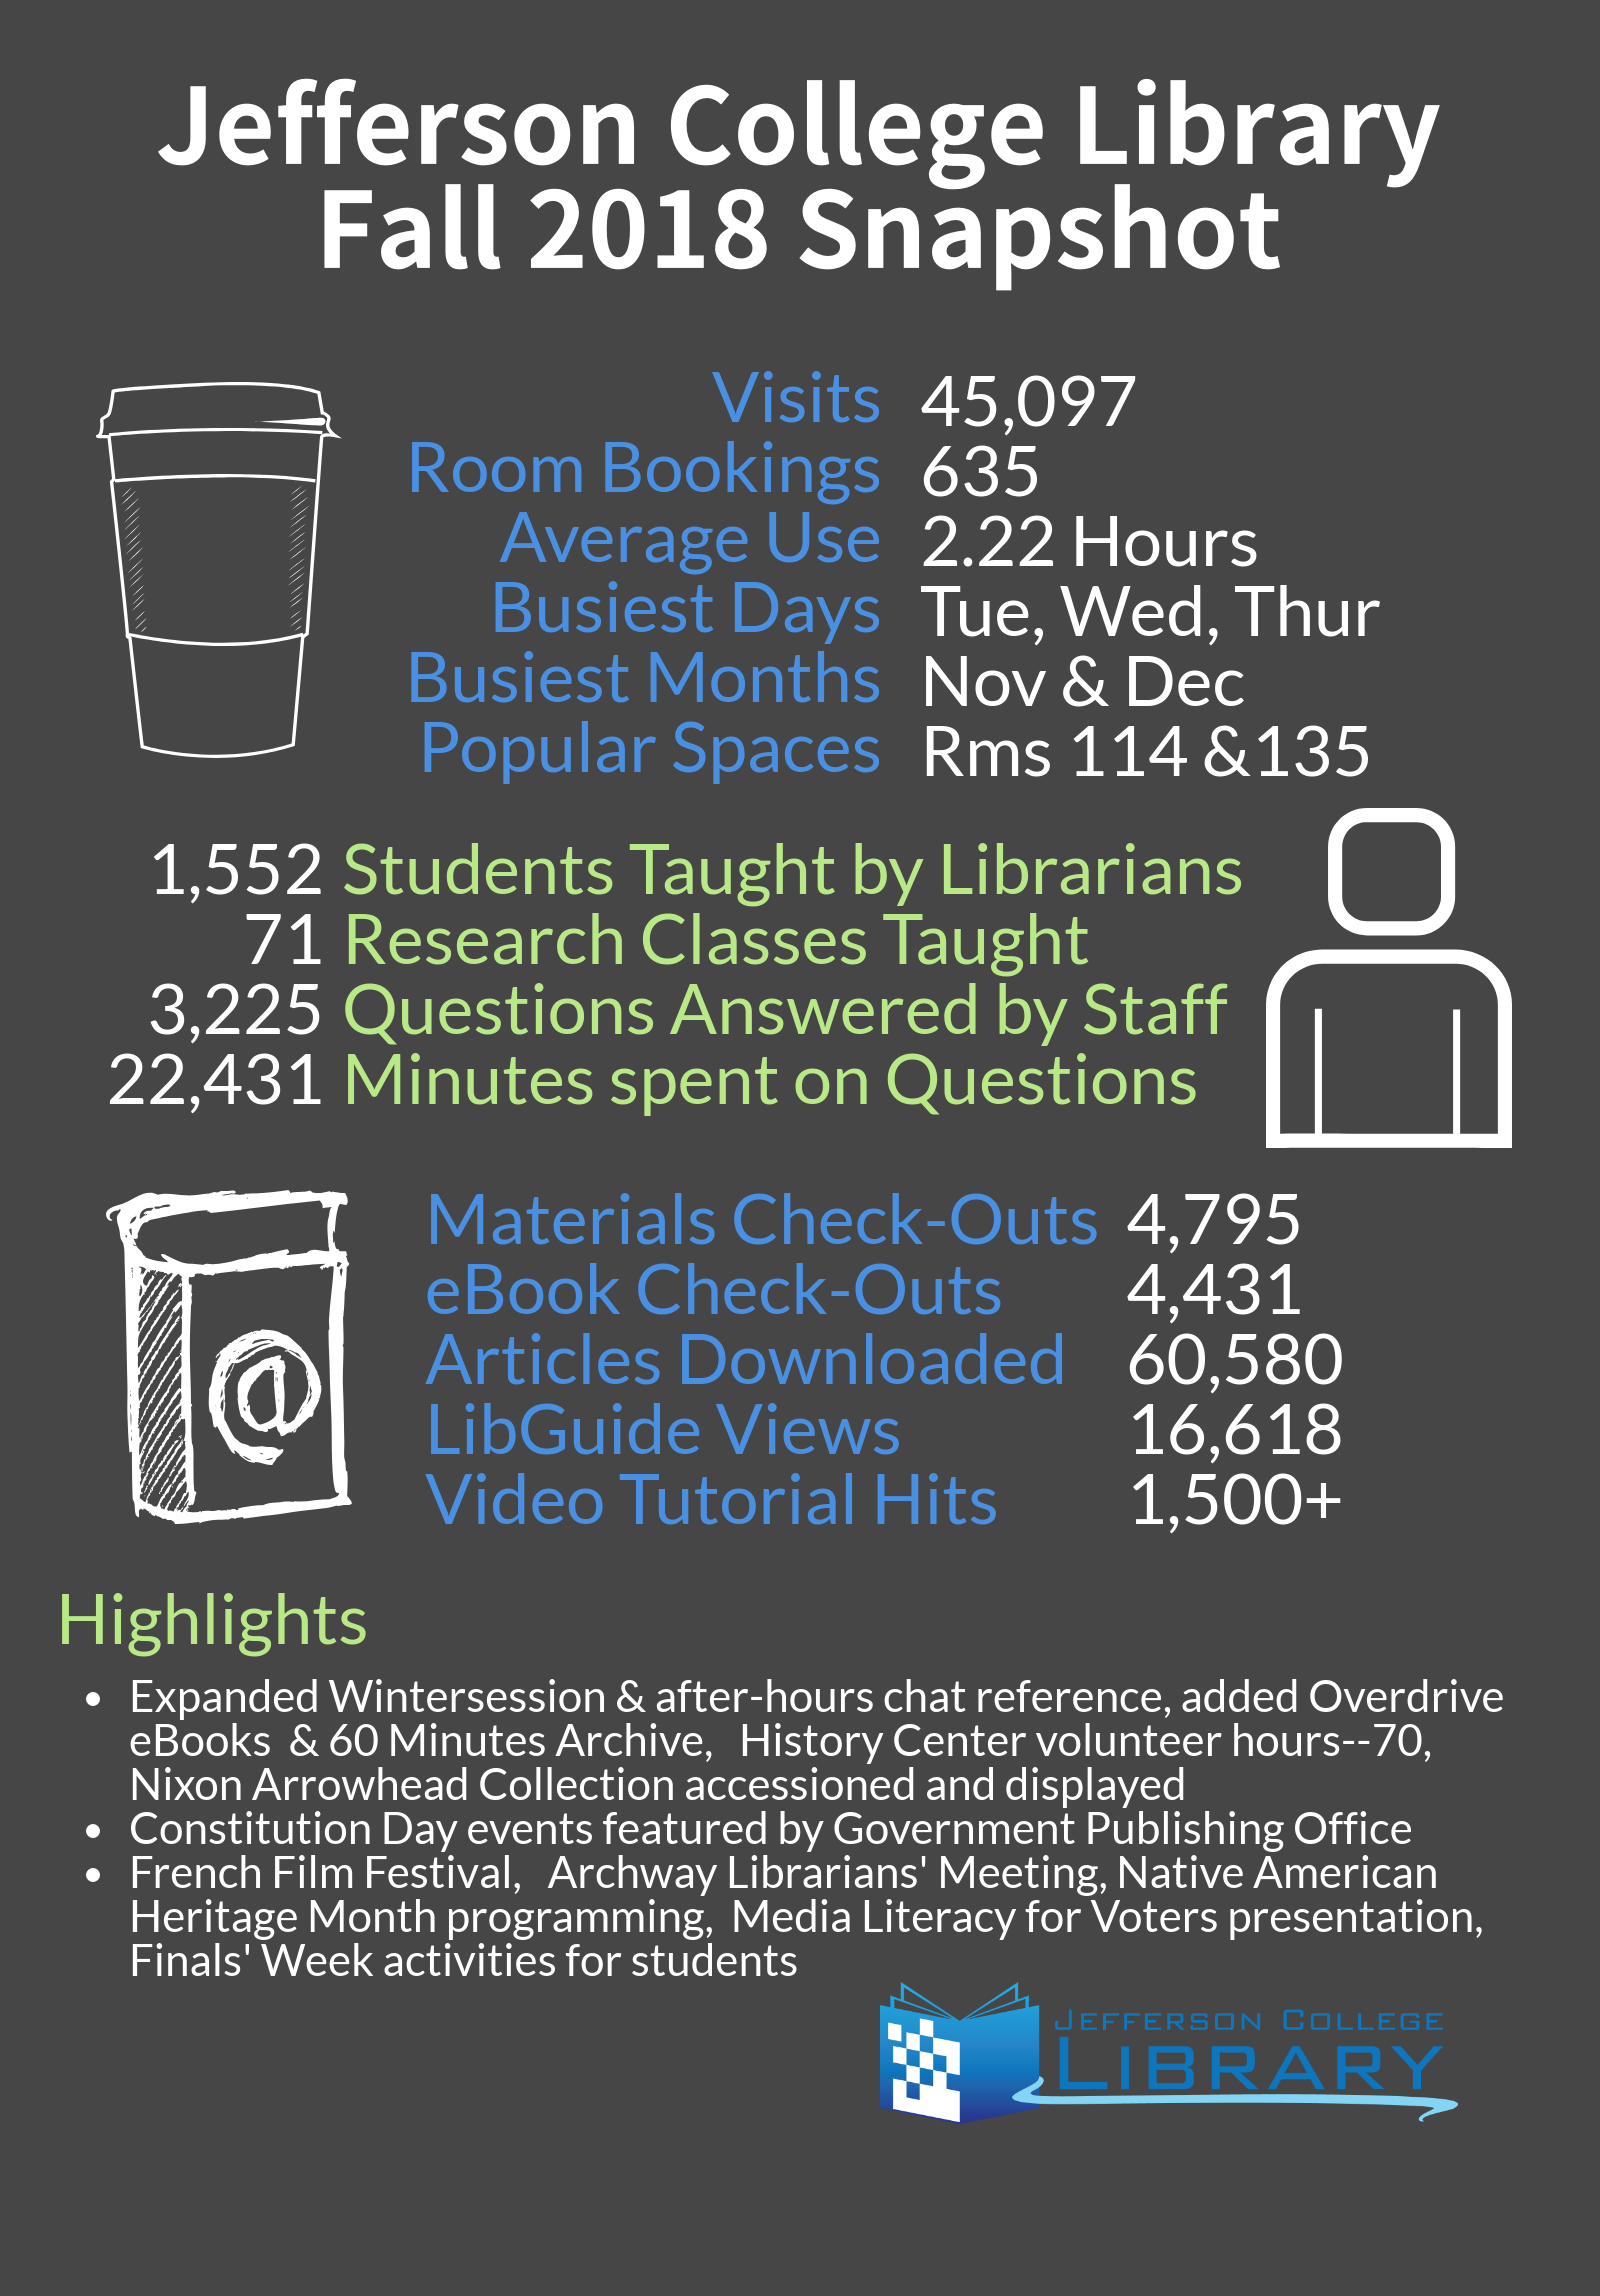 Statistics about fall 2018 Library use. Books checked-out, visits, and highlights.